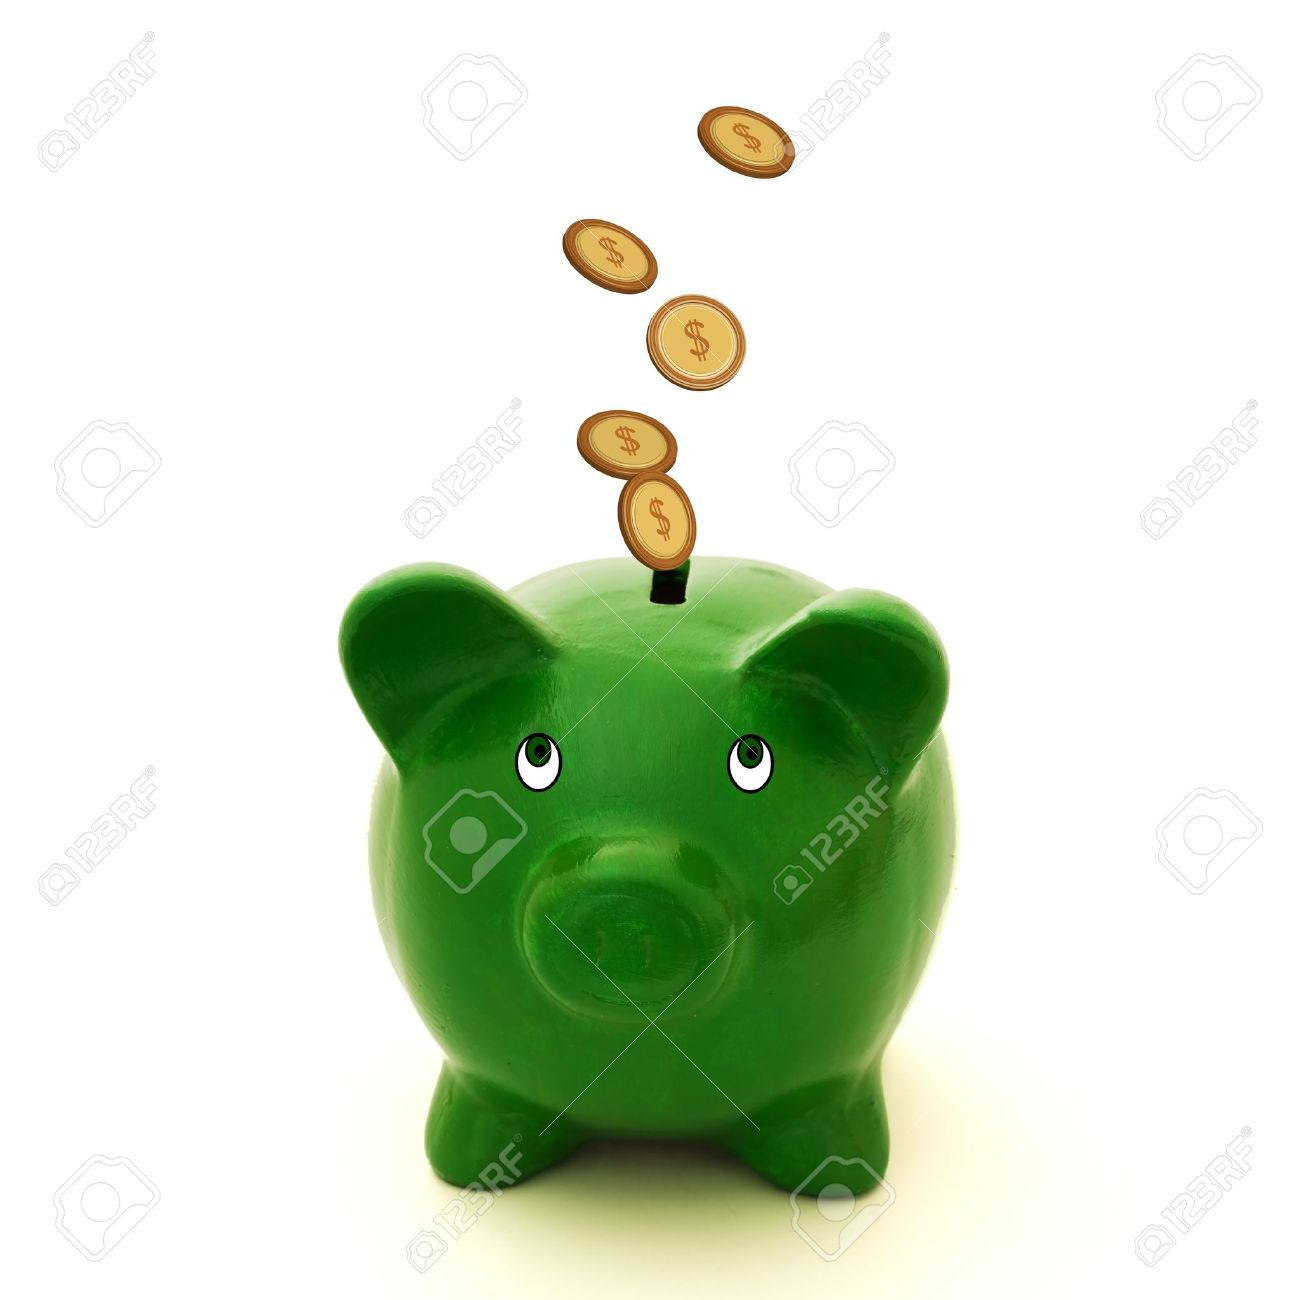 Green piggy bank clipart clip royalty free stock Green piggy bank clipart - ClipartFest clip royalty free stock